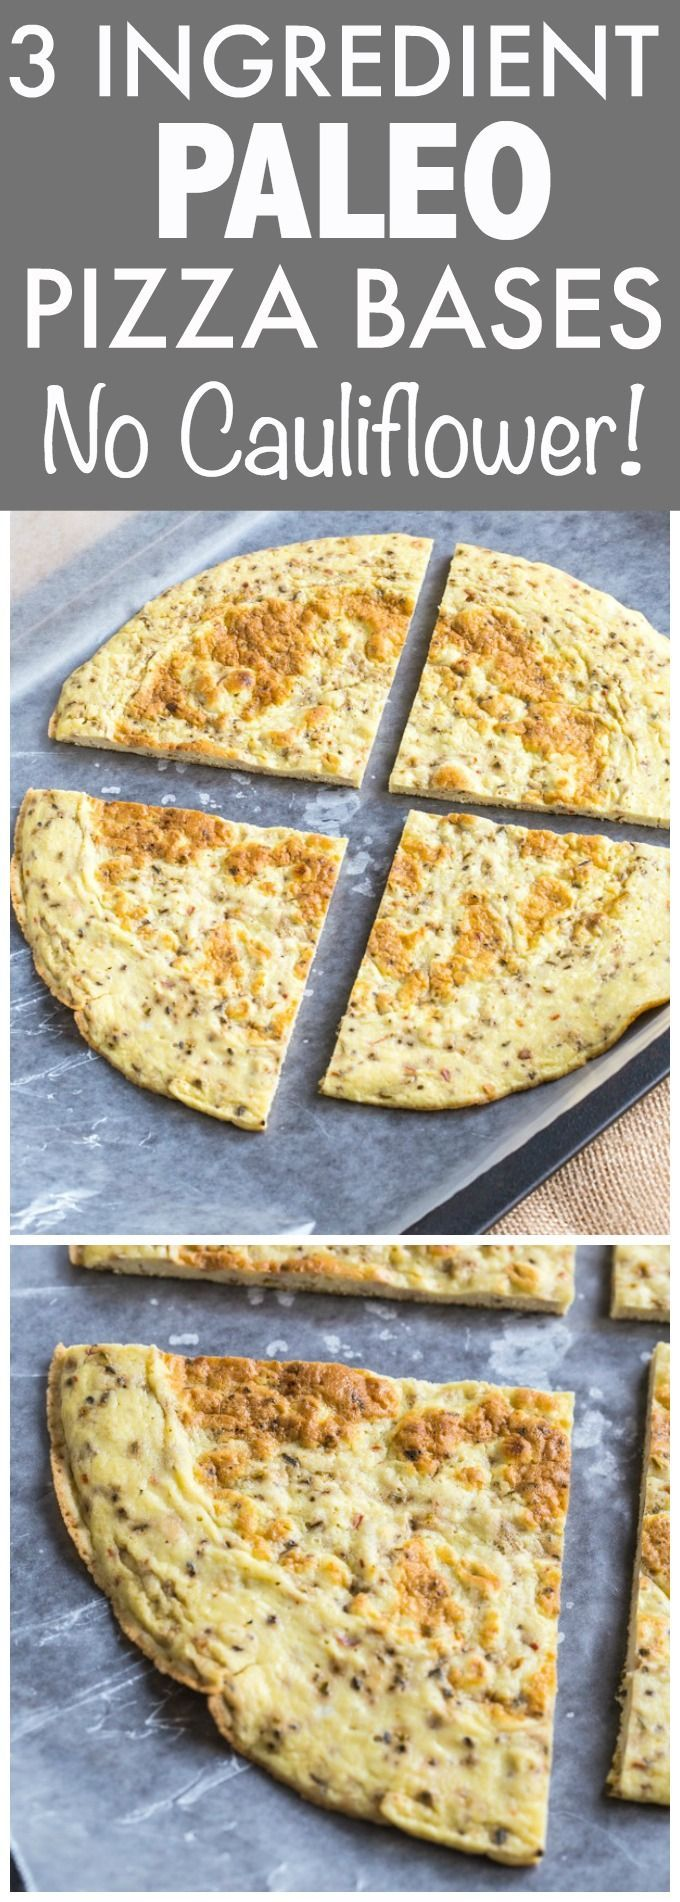 3 Ingredient Paleo Pizza Bases which have NO cauliflower and are made stovetop- They are ready in no time and chock full of protein! Gluten free and Whole30 friendly! - http://thebigmansworld.com